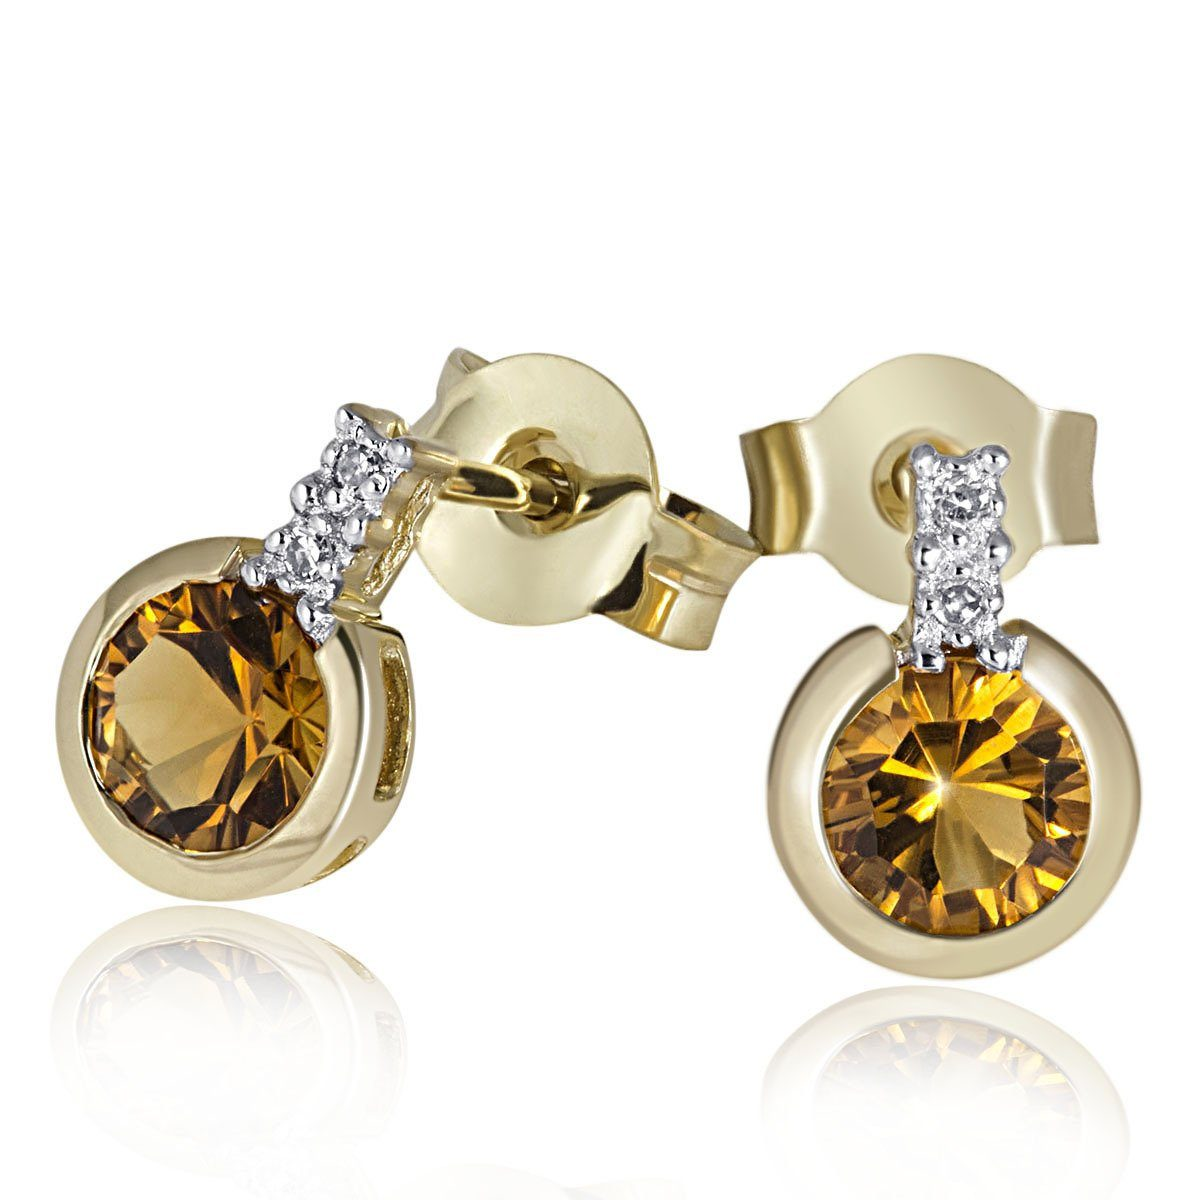 goldmaid Paar Ohrstecker 375/- Gelbgold 2 Citrine 4 Diamanten 0,02 ct.